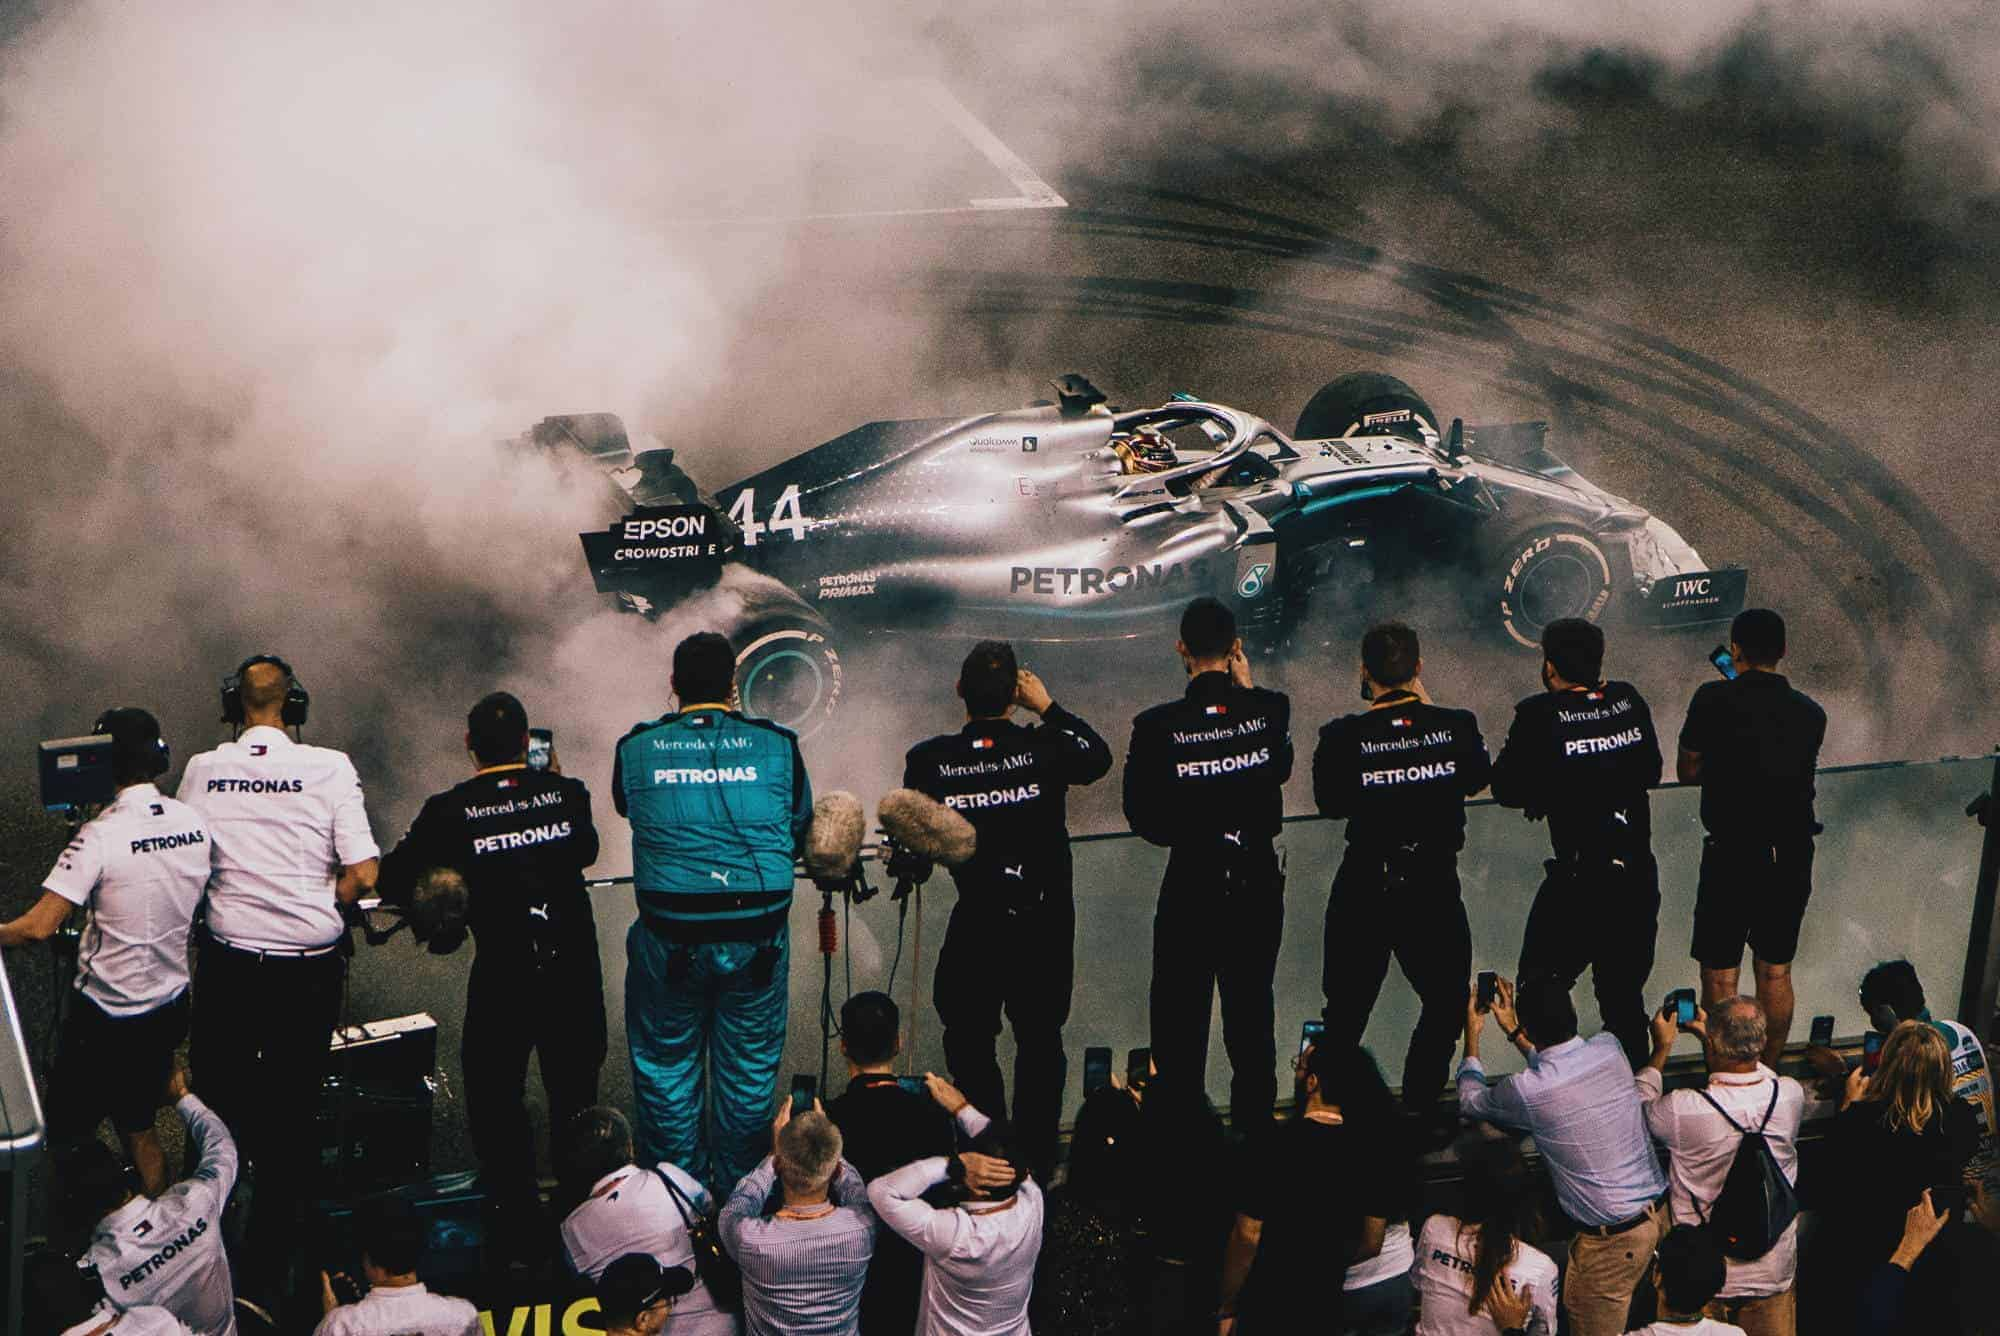 Hamilton Mercedes F1 2019 Abu Dhabi post race on track in the car burnouts Photo Daimler